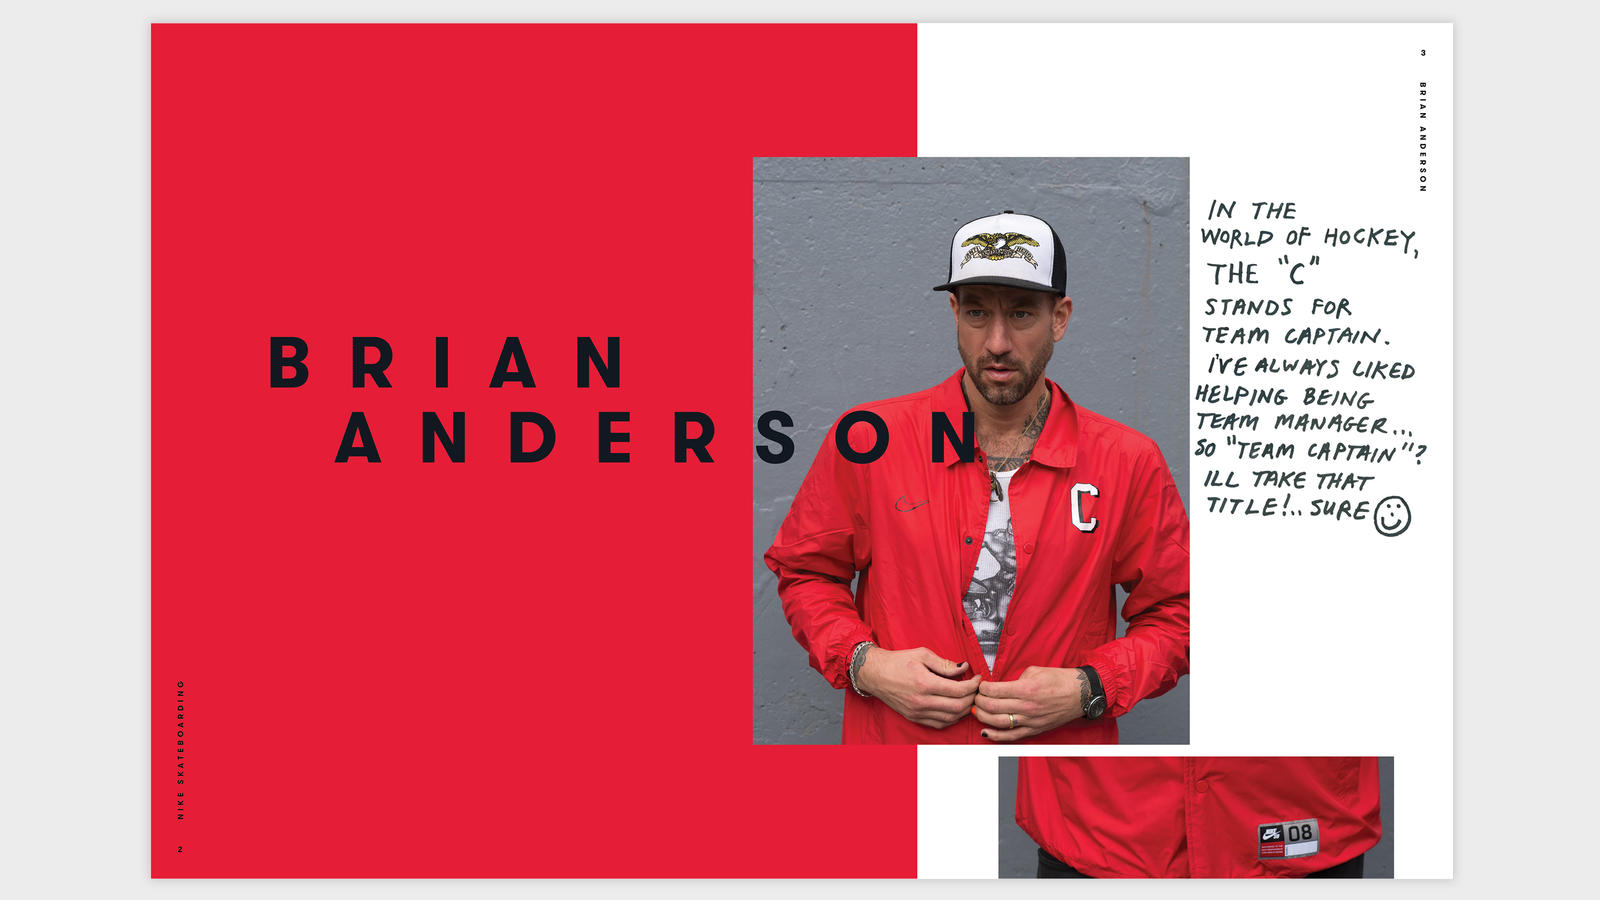 THE-BRIAN-ANDERSON-COLLECTION-ZINE-2-3_hd_1600